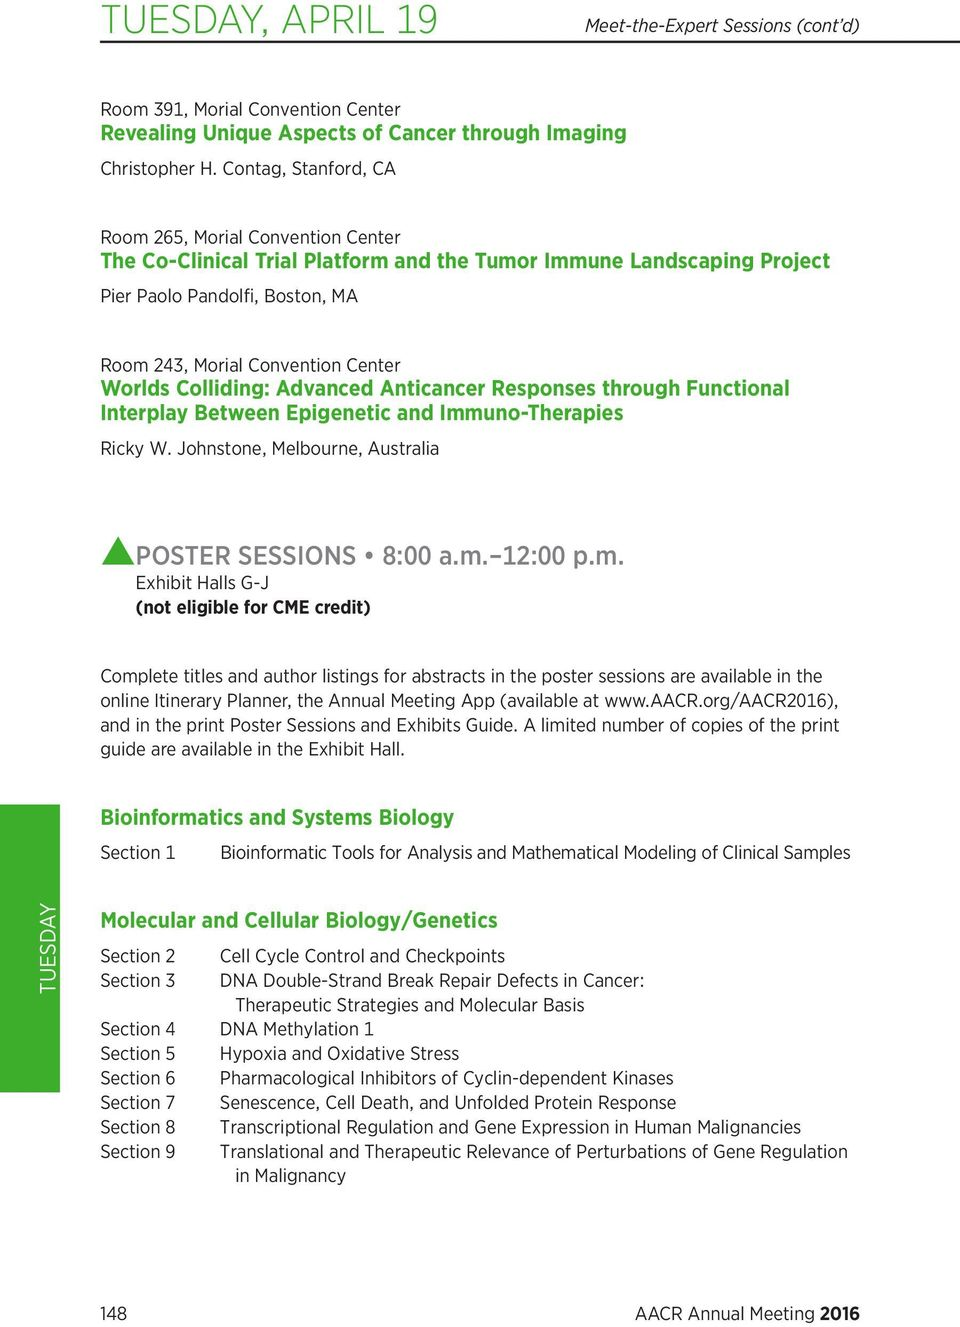 AACR Annual Meeting 2016 Program Guide PDF  Tuesday, April